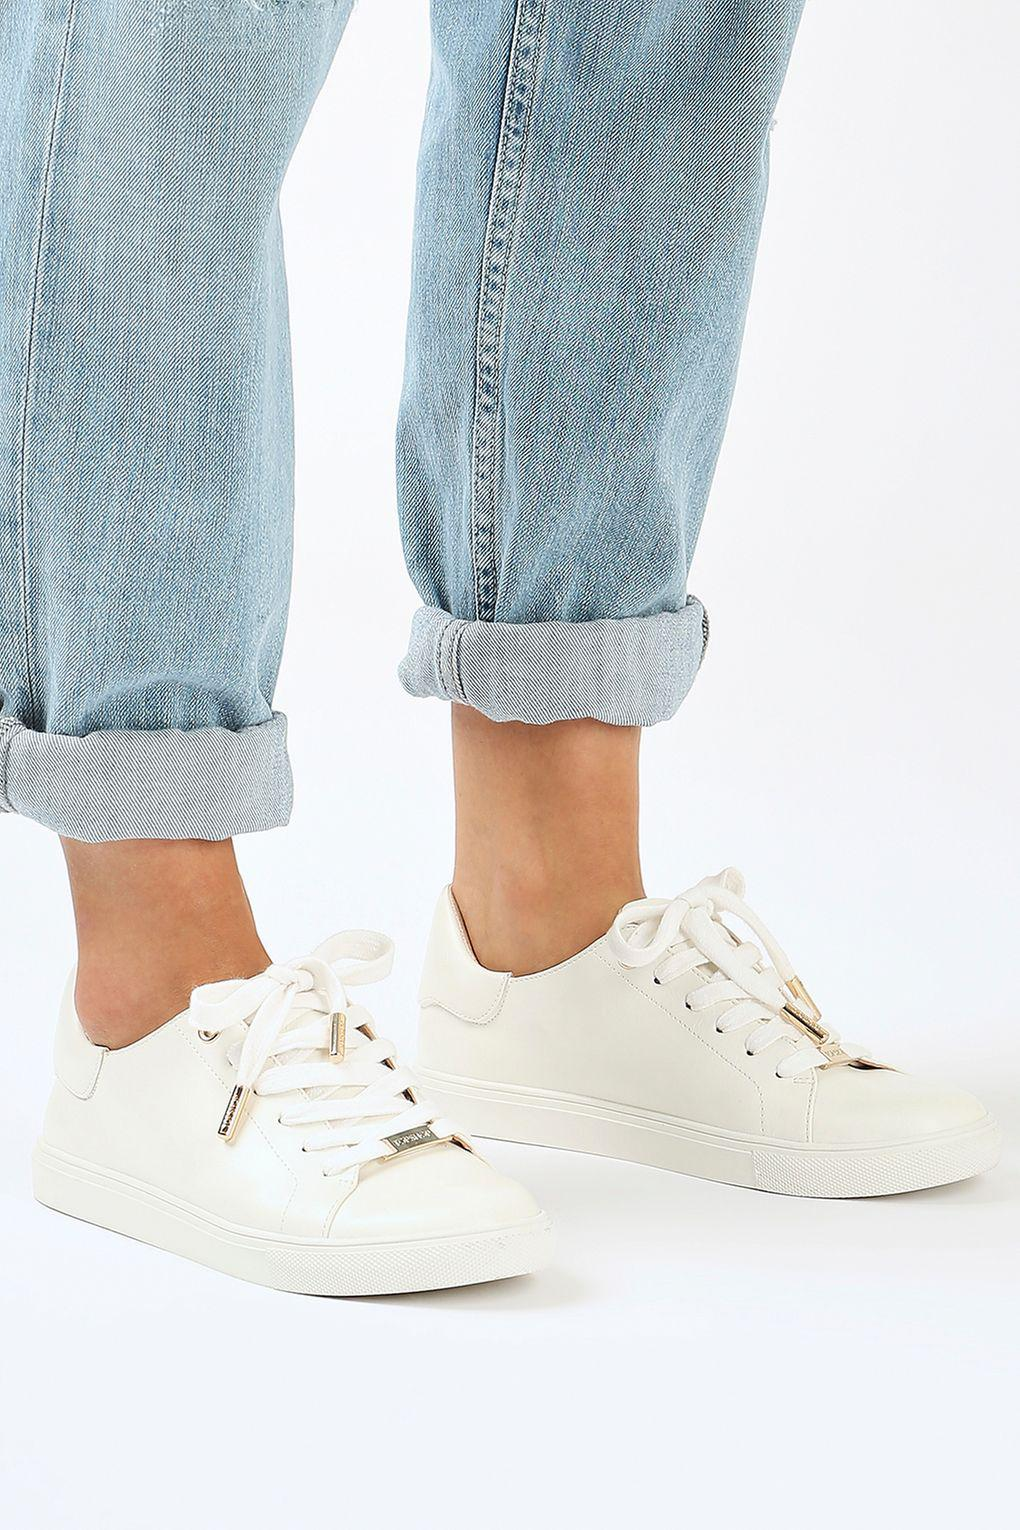 TOPSHOP Denim Catseye Lace Up Trainers